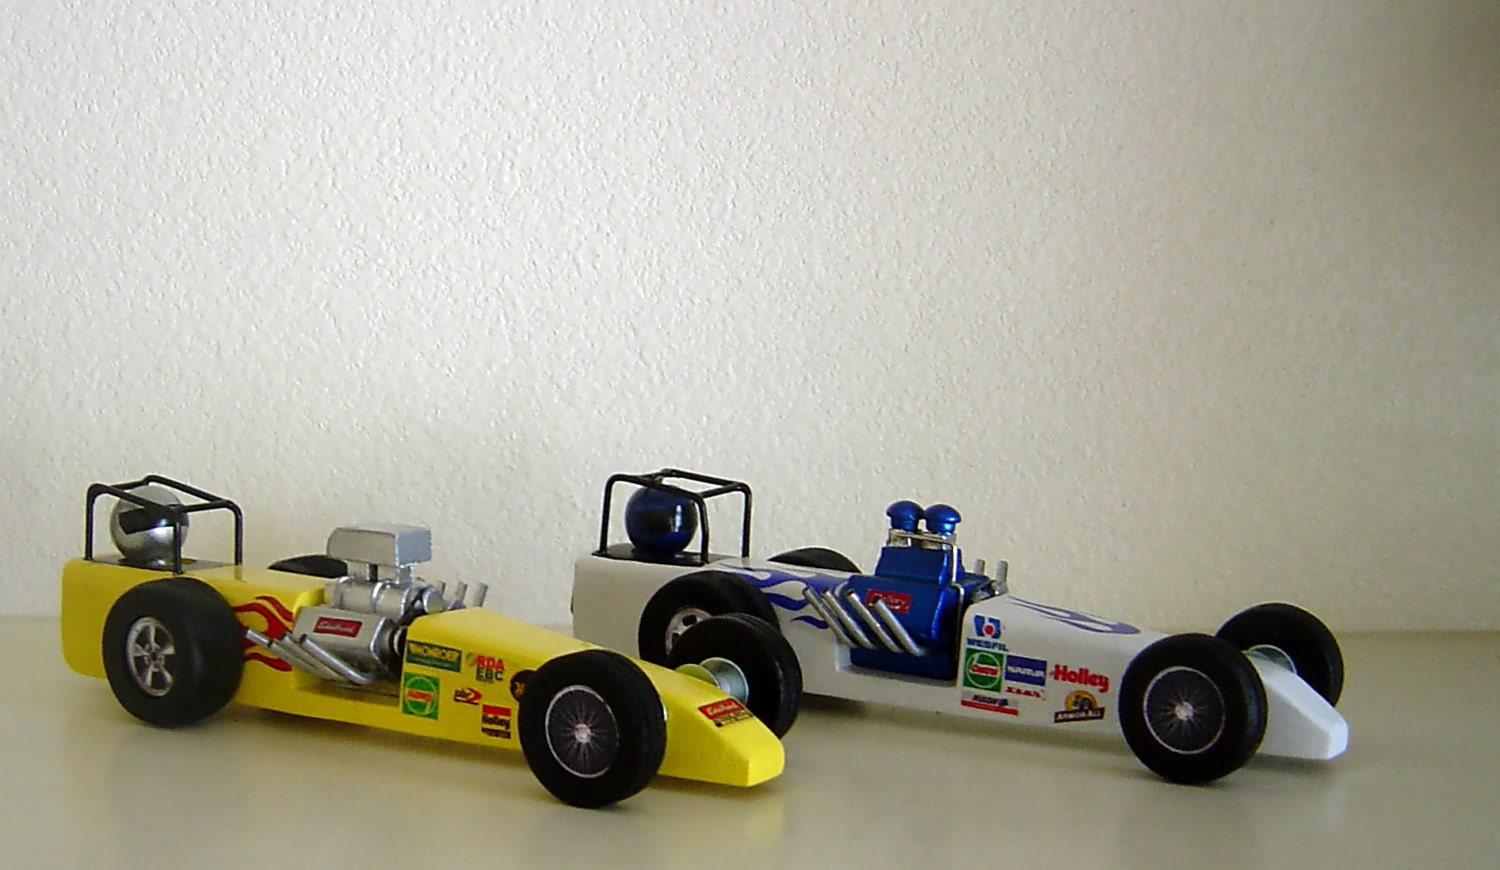 Wood Dragster Images - Reverse Search